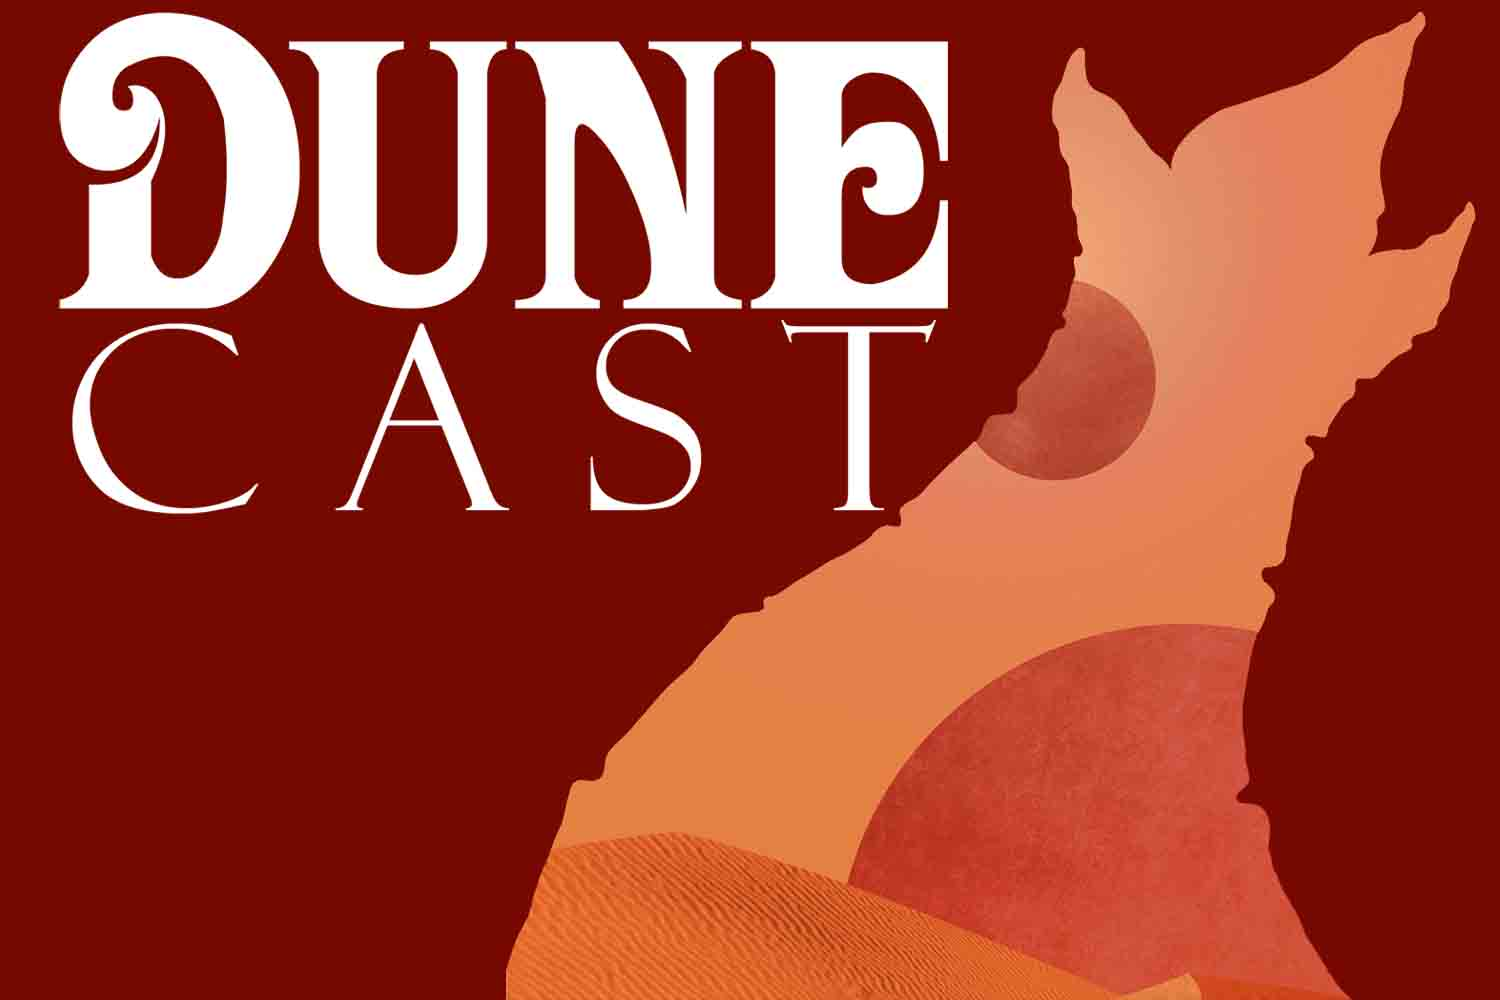 Dune Cast